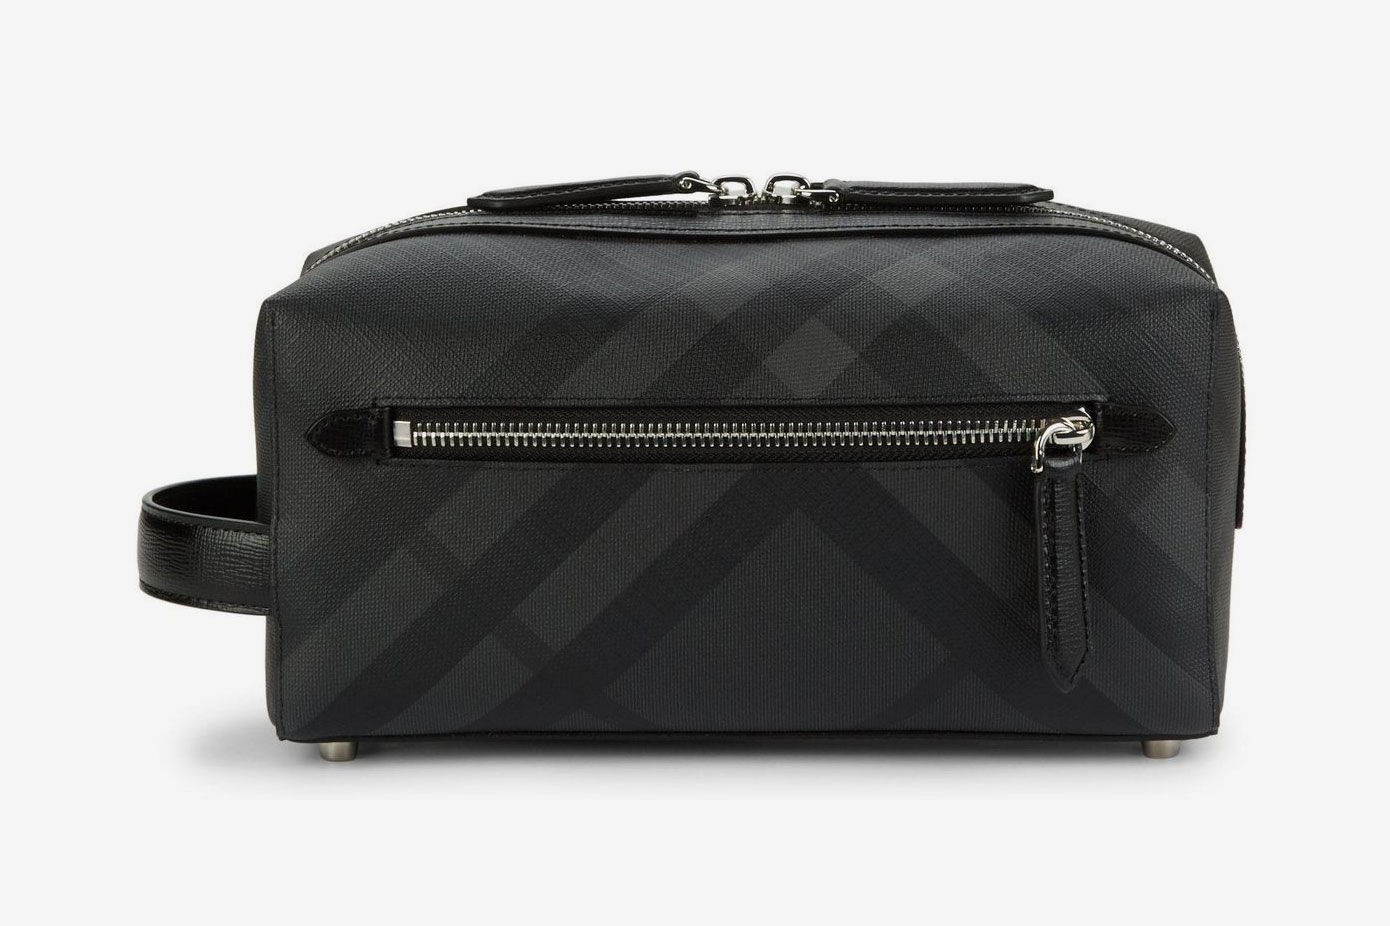 bb33af0c10 Burberry Check Dopp Kit at Saks Fifth Avenue